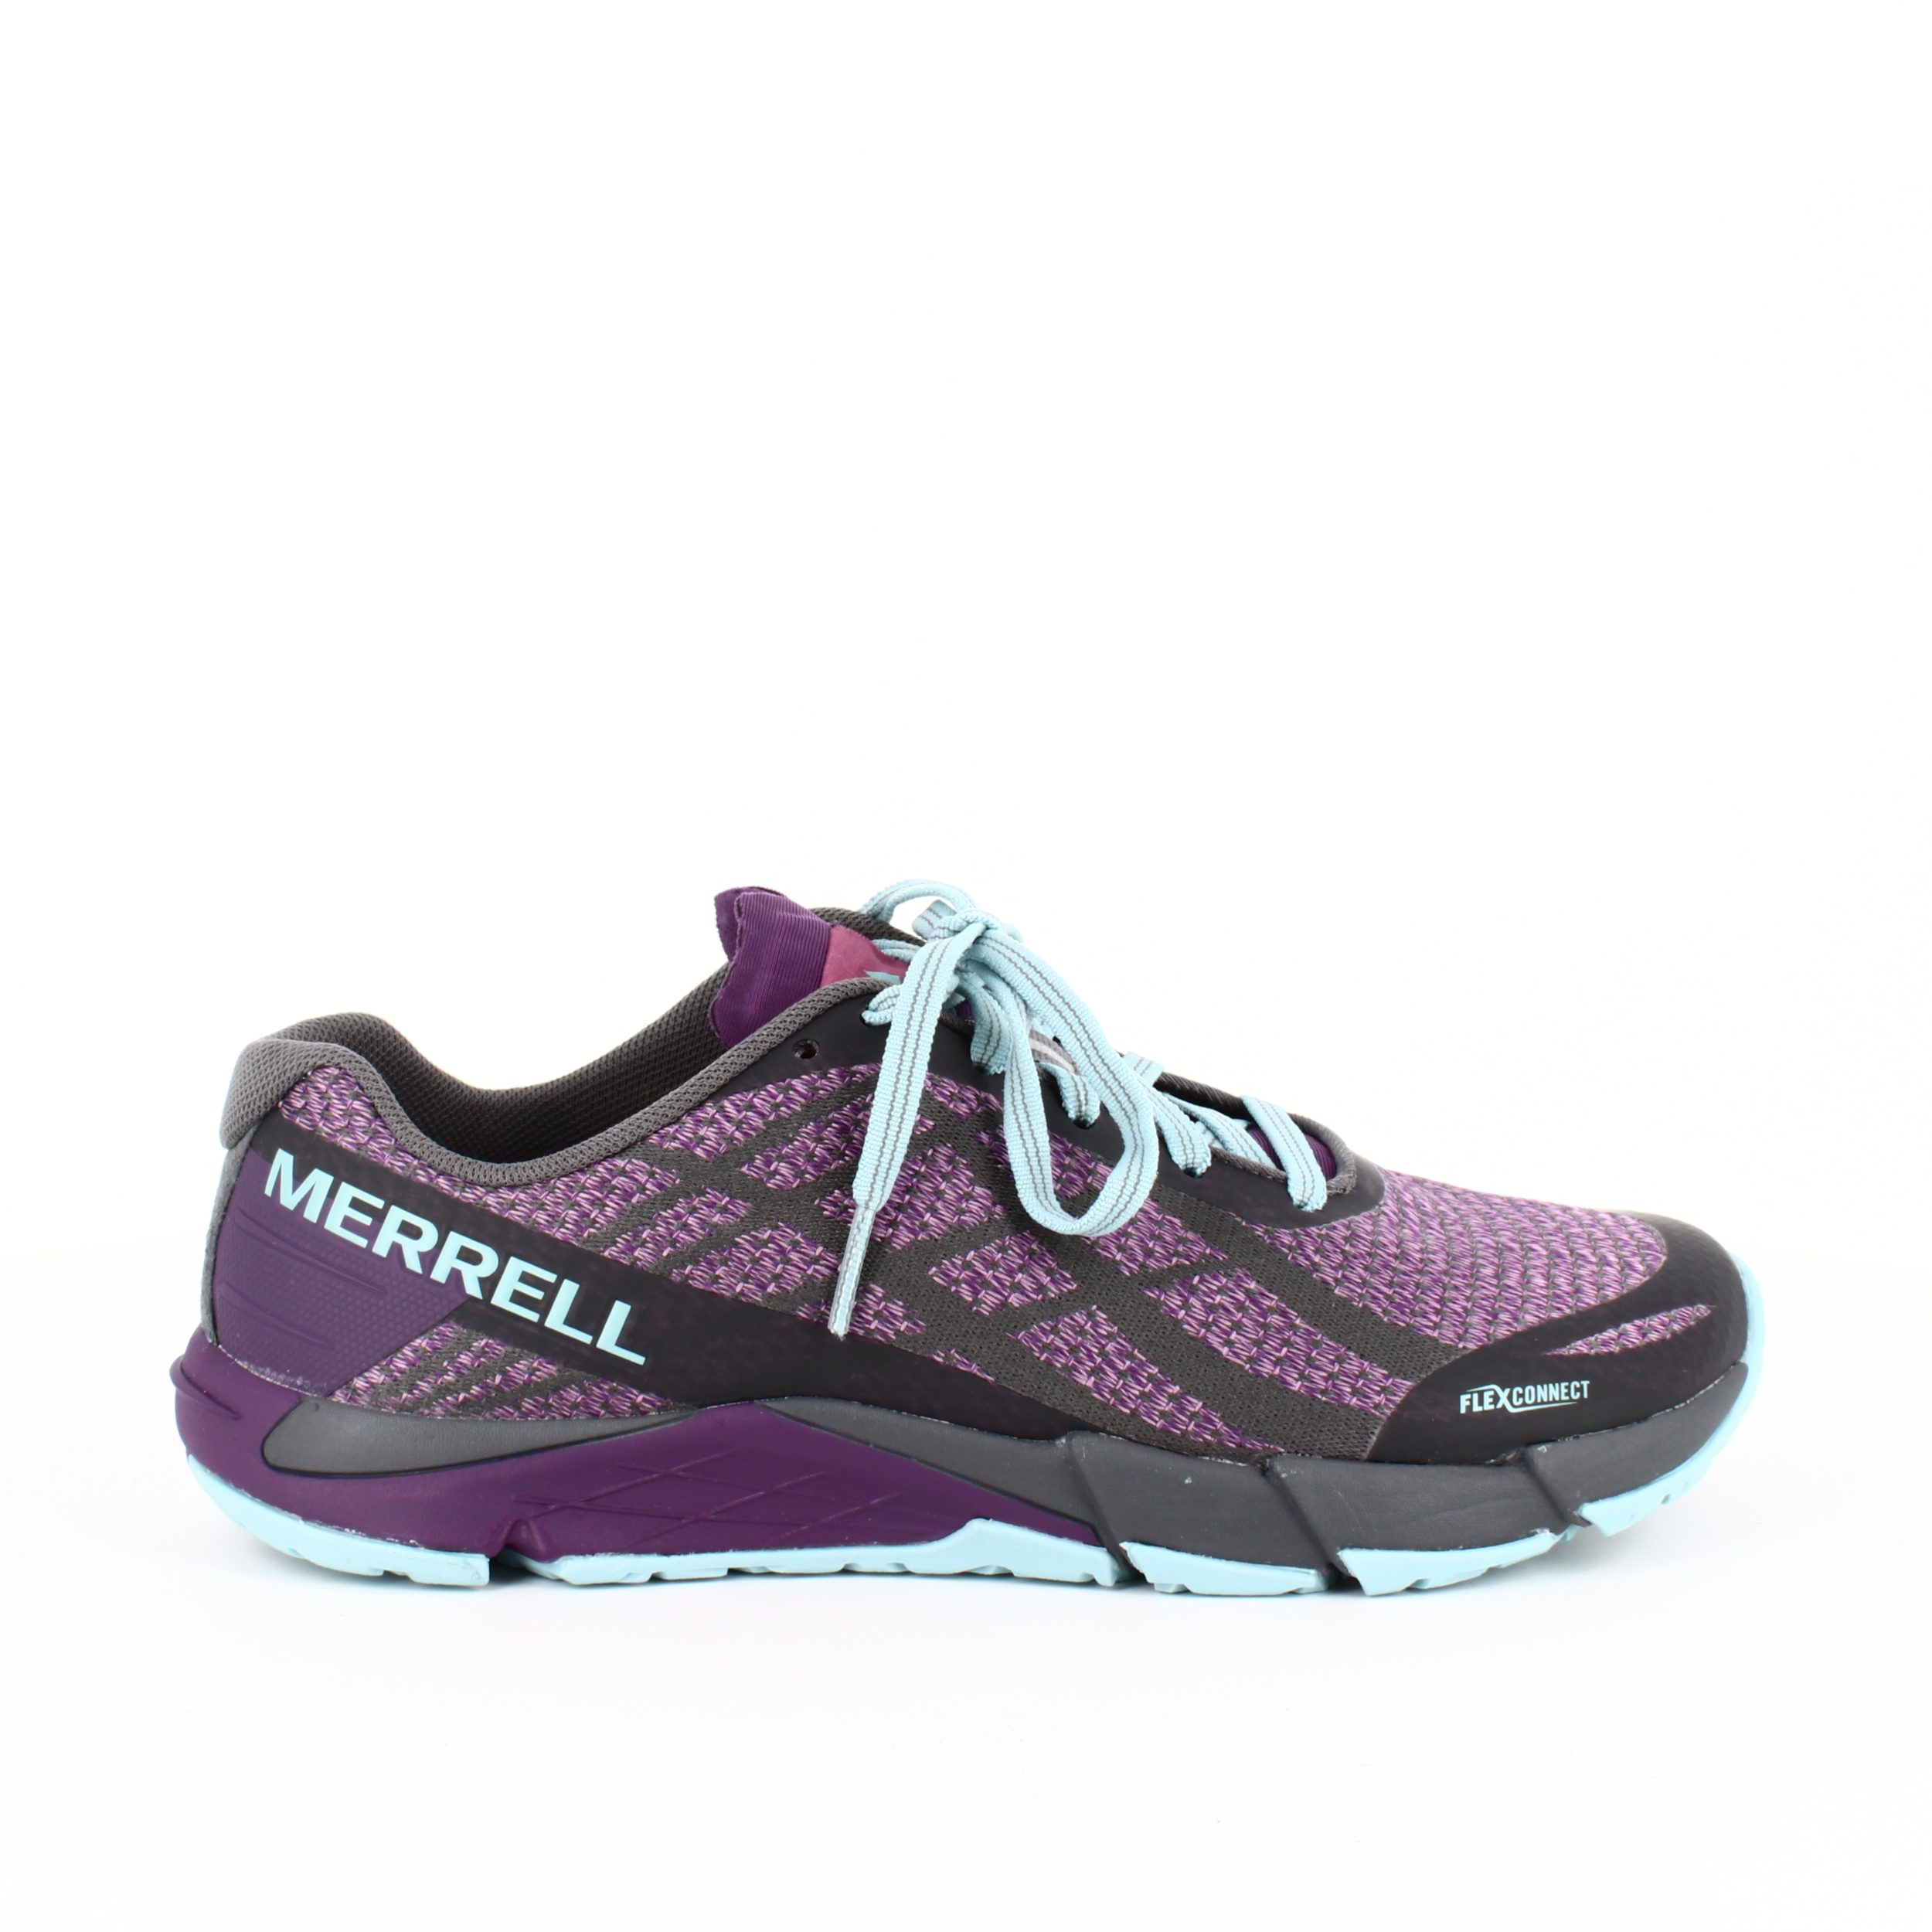 Image of   Merrell sneakers med flex shield og bare foot teknologi - 38